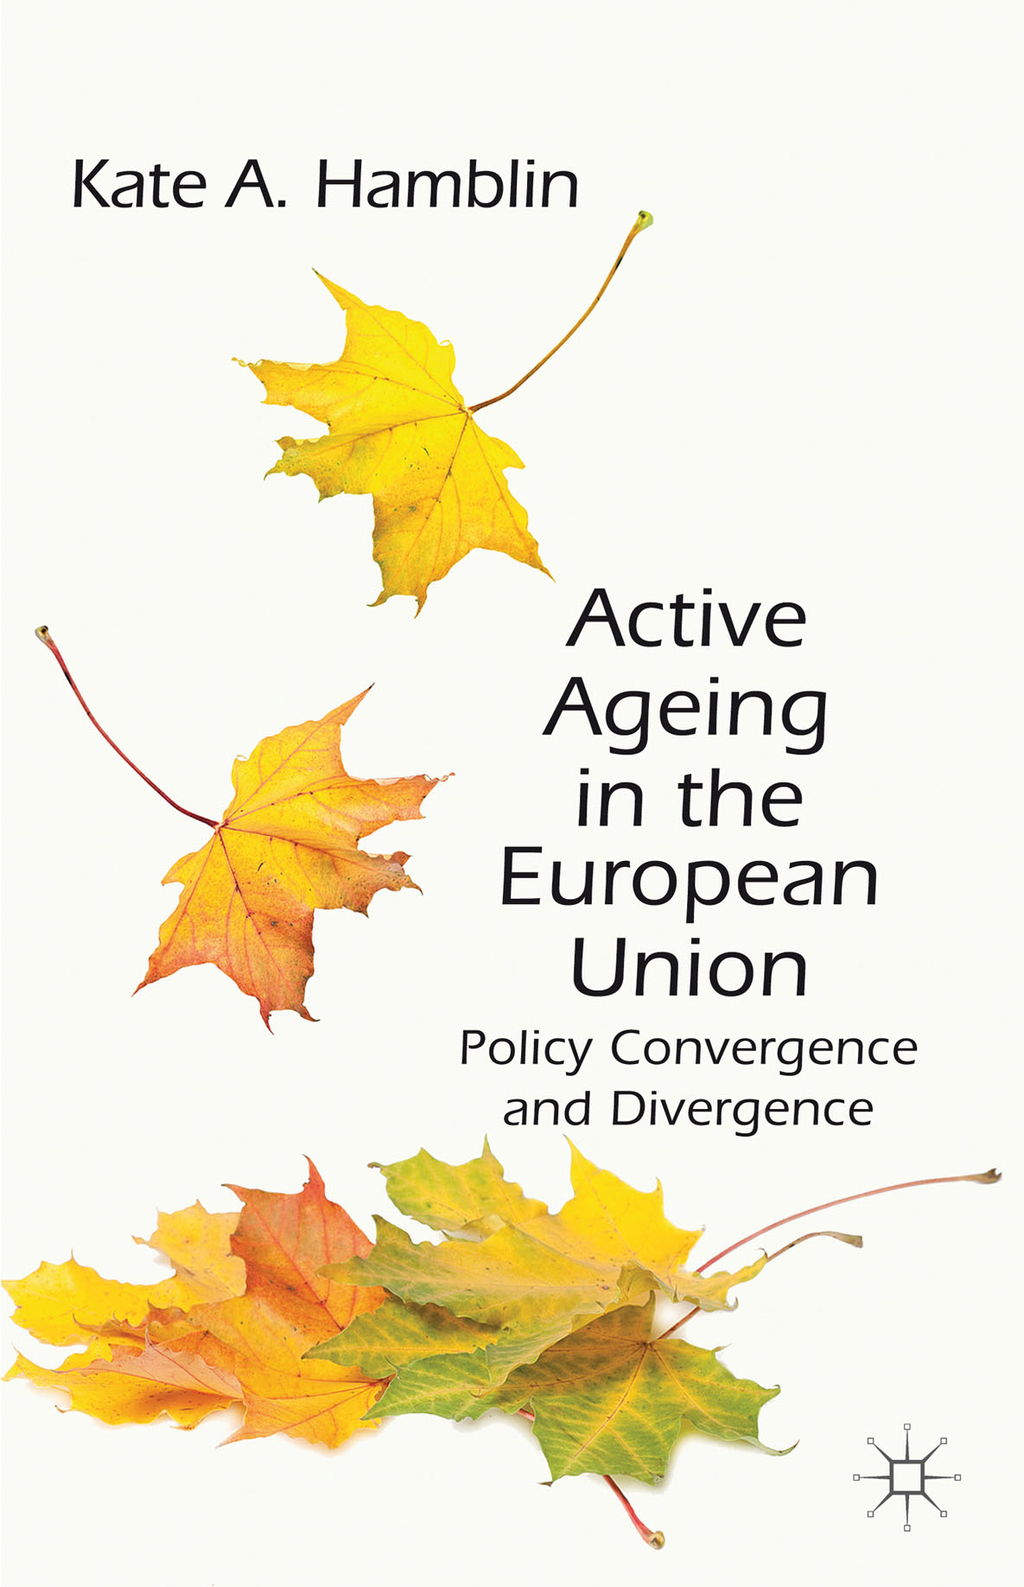 Active Ageing in the European Union Policy Convergence and Divergence